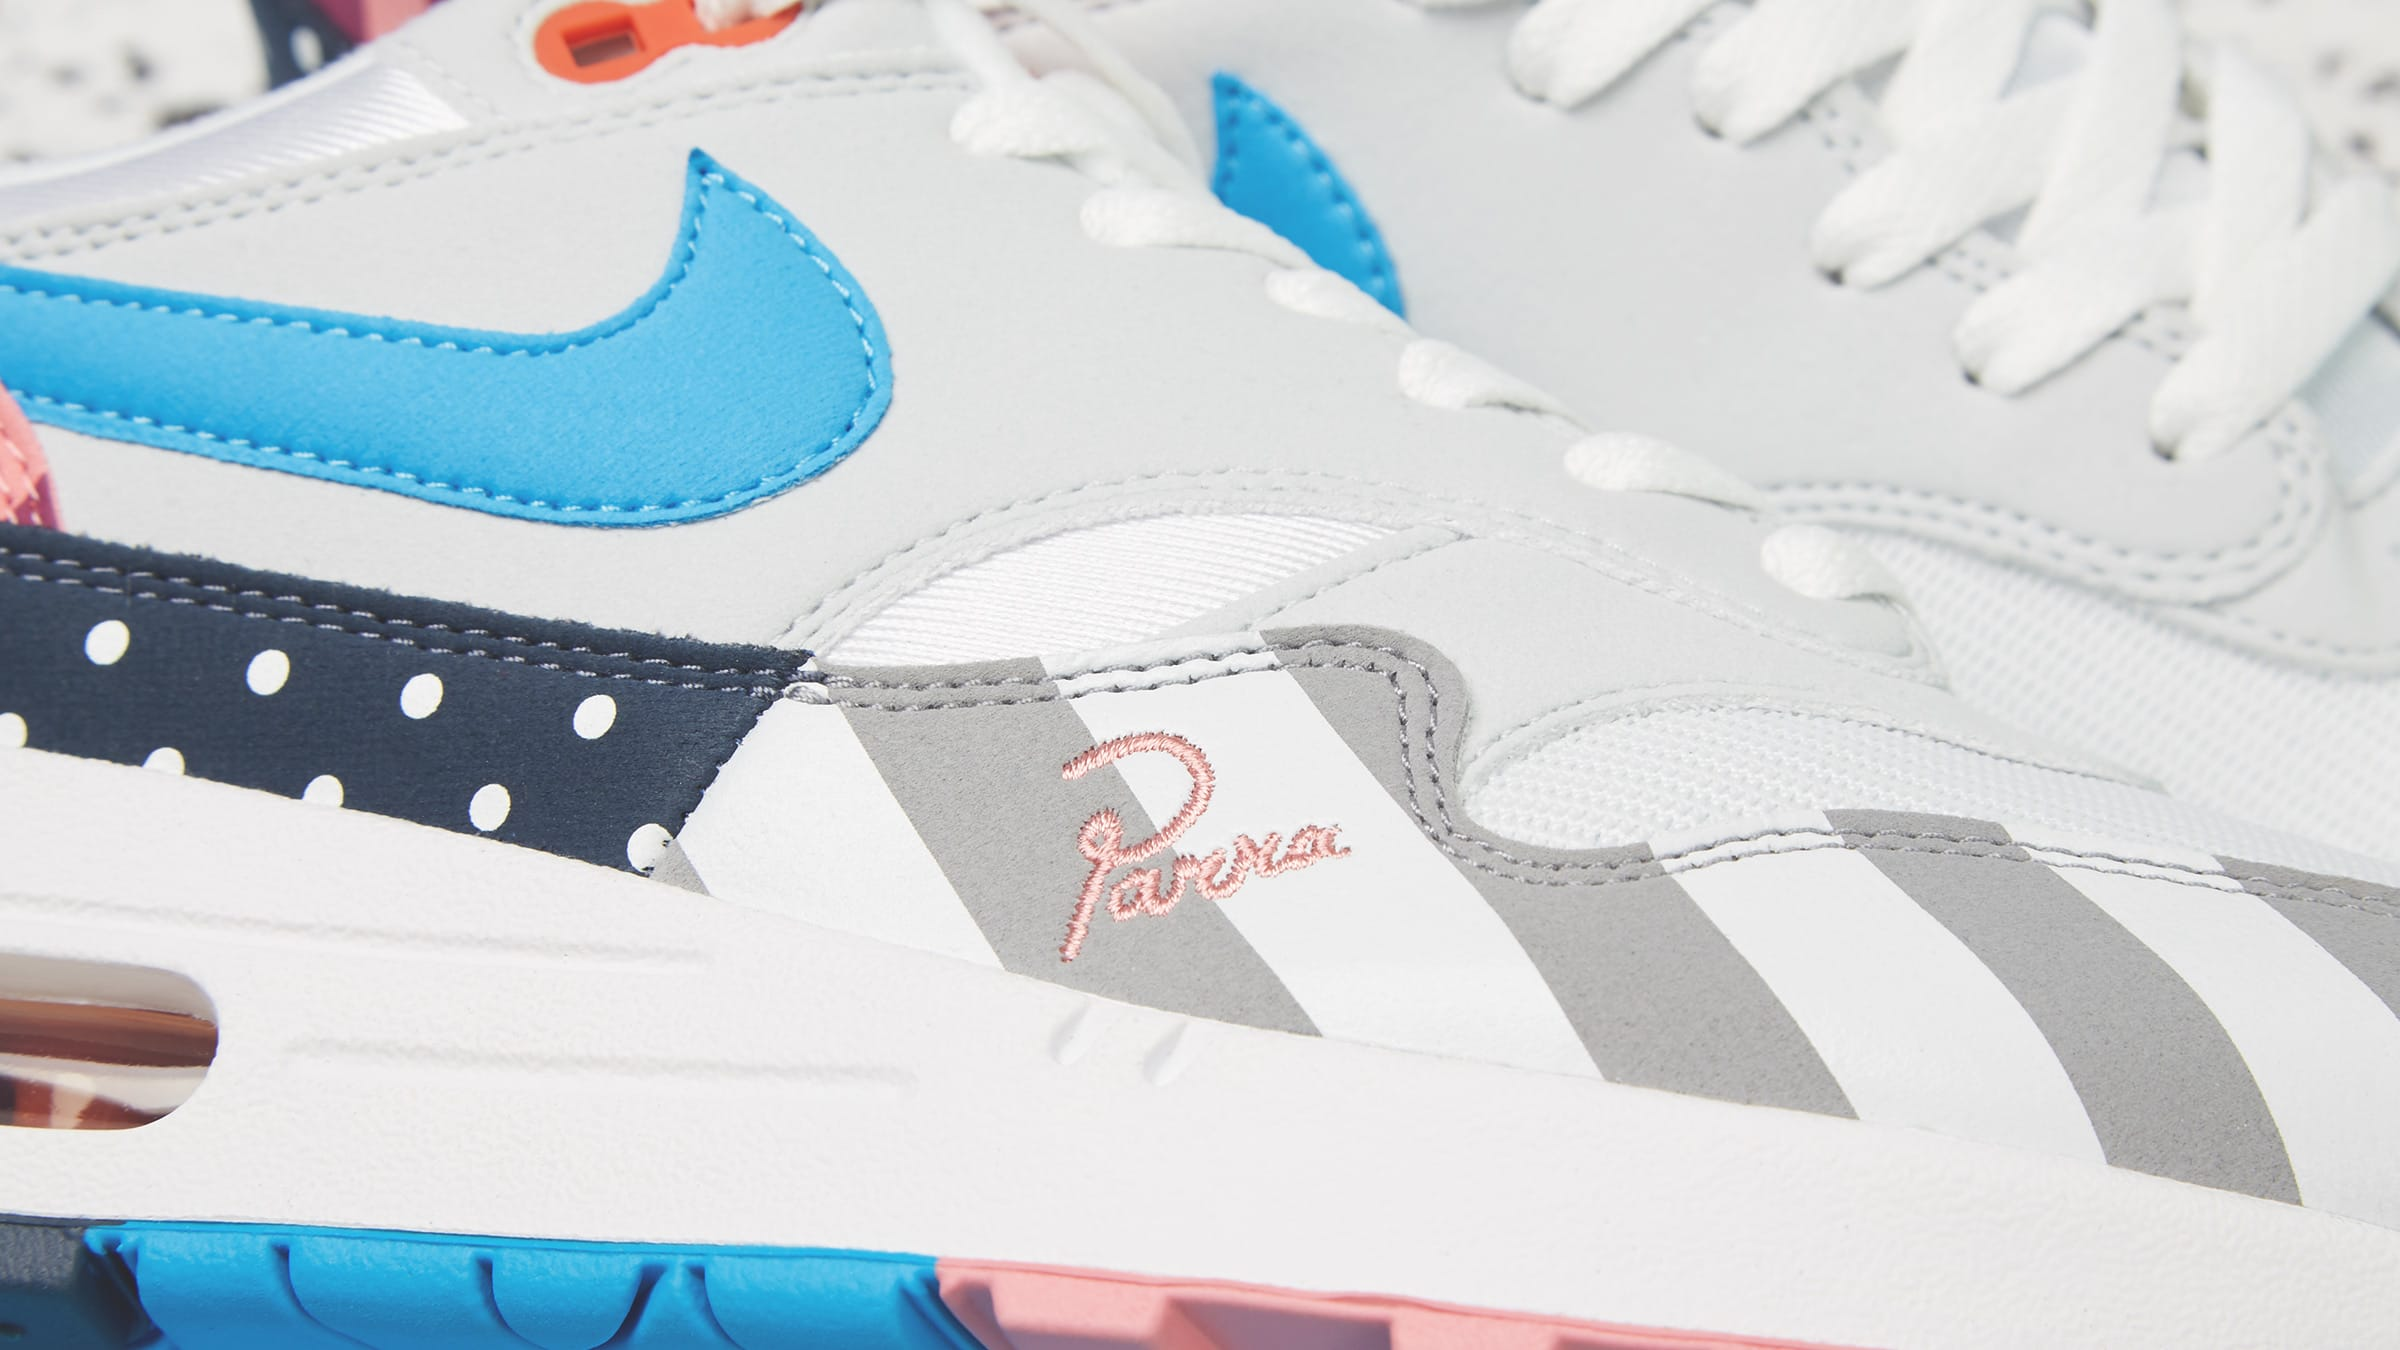 100% authentic 6419d 0afca Nike x Parra Air Max 1. White   Multi£119